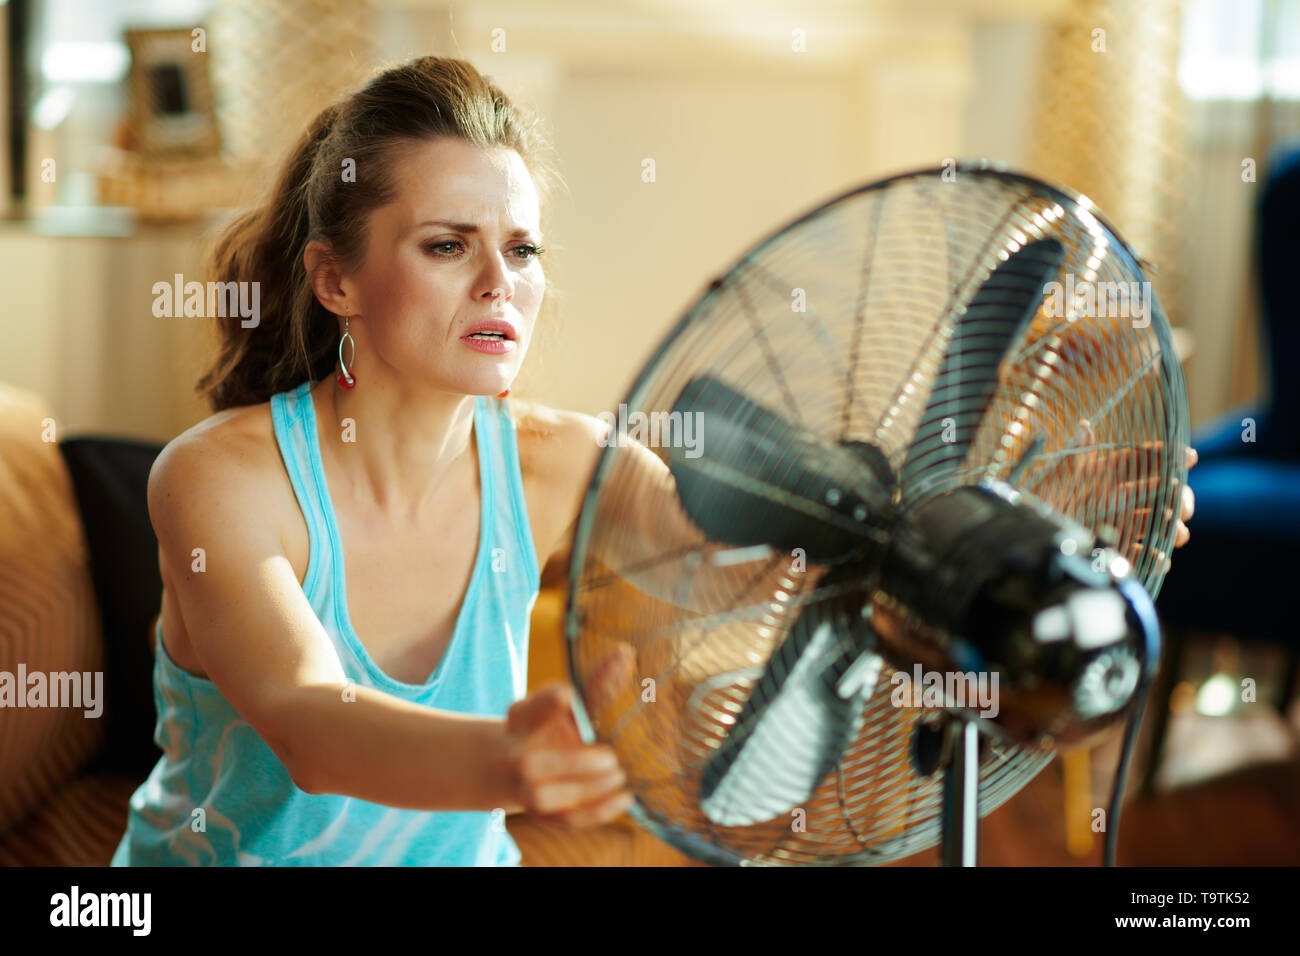 hot housewife in the modern living room in sunny hot summer day showing victory gesture suffering from summer heat. Stock Photo